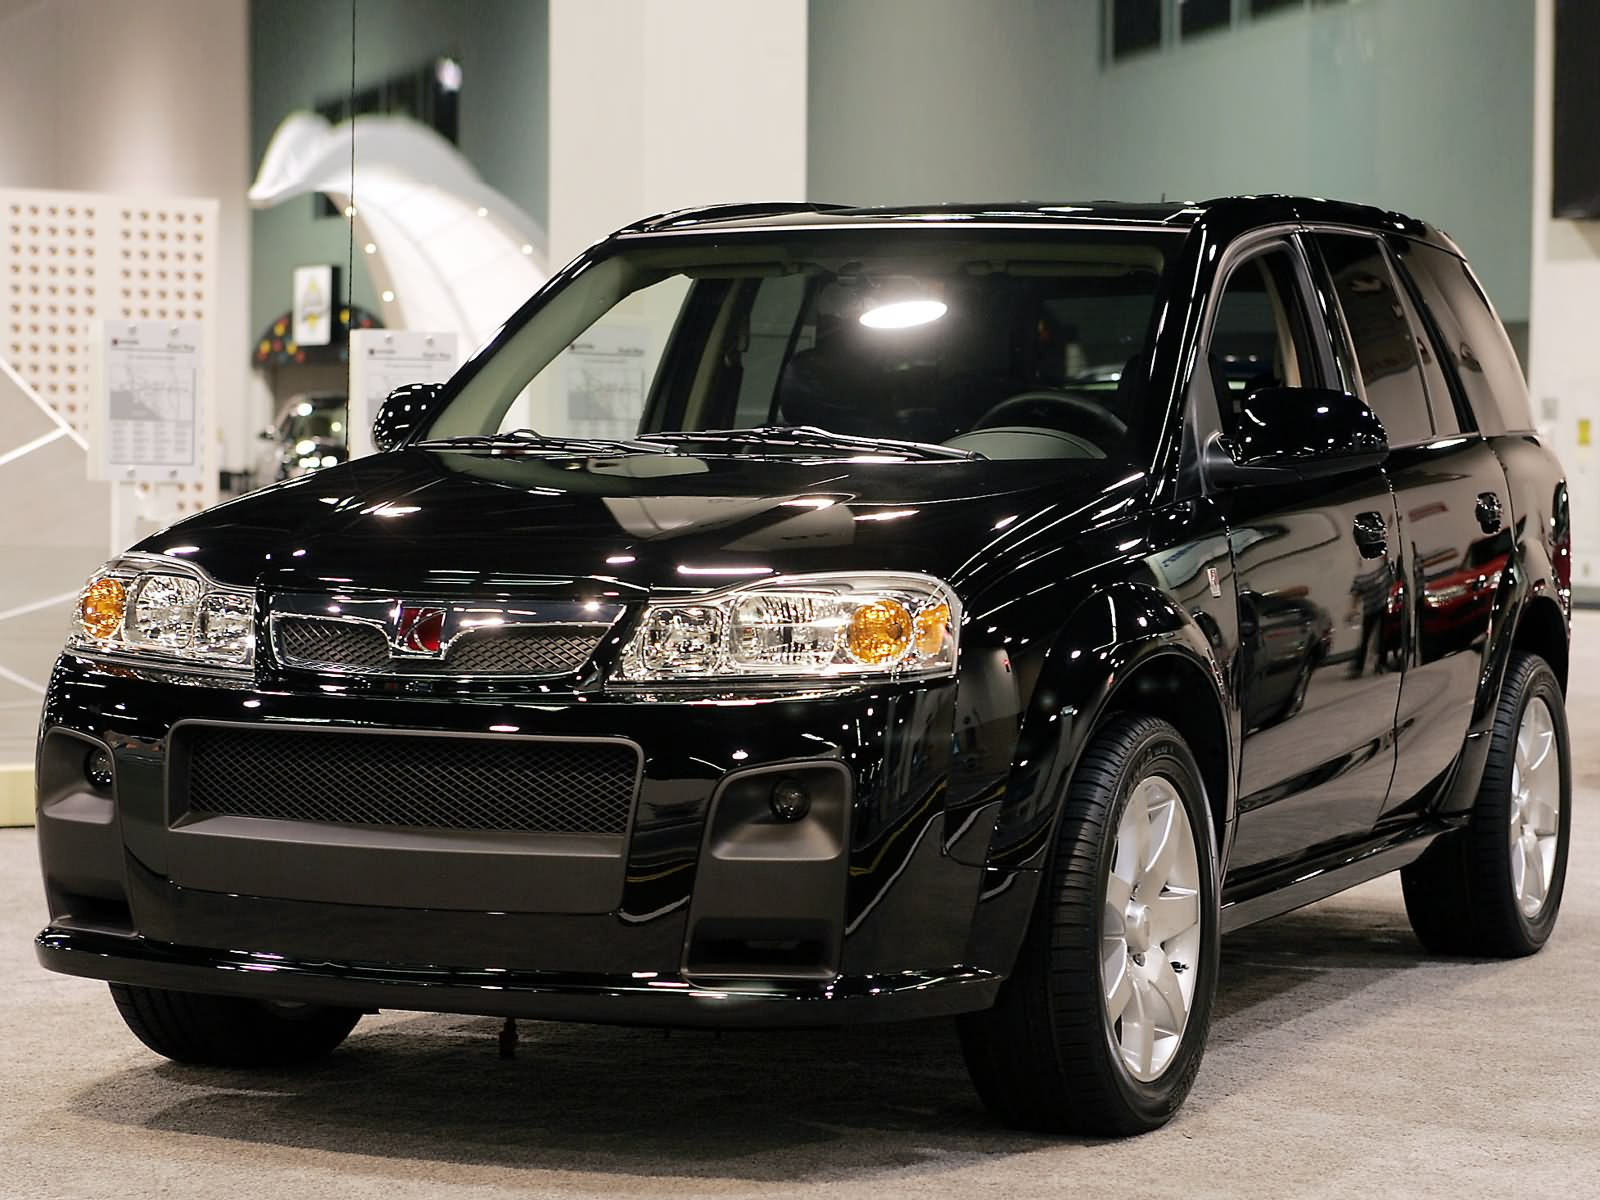 2005 saturn vue redline gallery hd cars wallpaper 2005 saturn vue redline gallery hd cars wallpaper 2005 saturn vue redline interior images hd cars vanachro Image collections